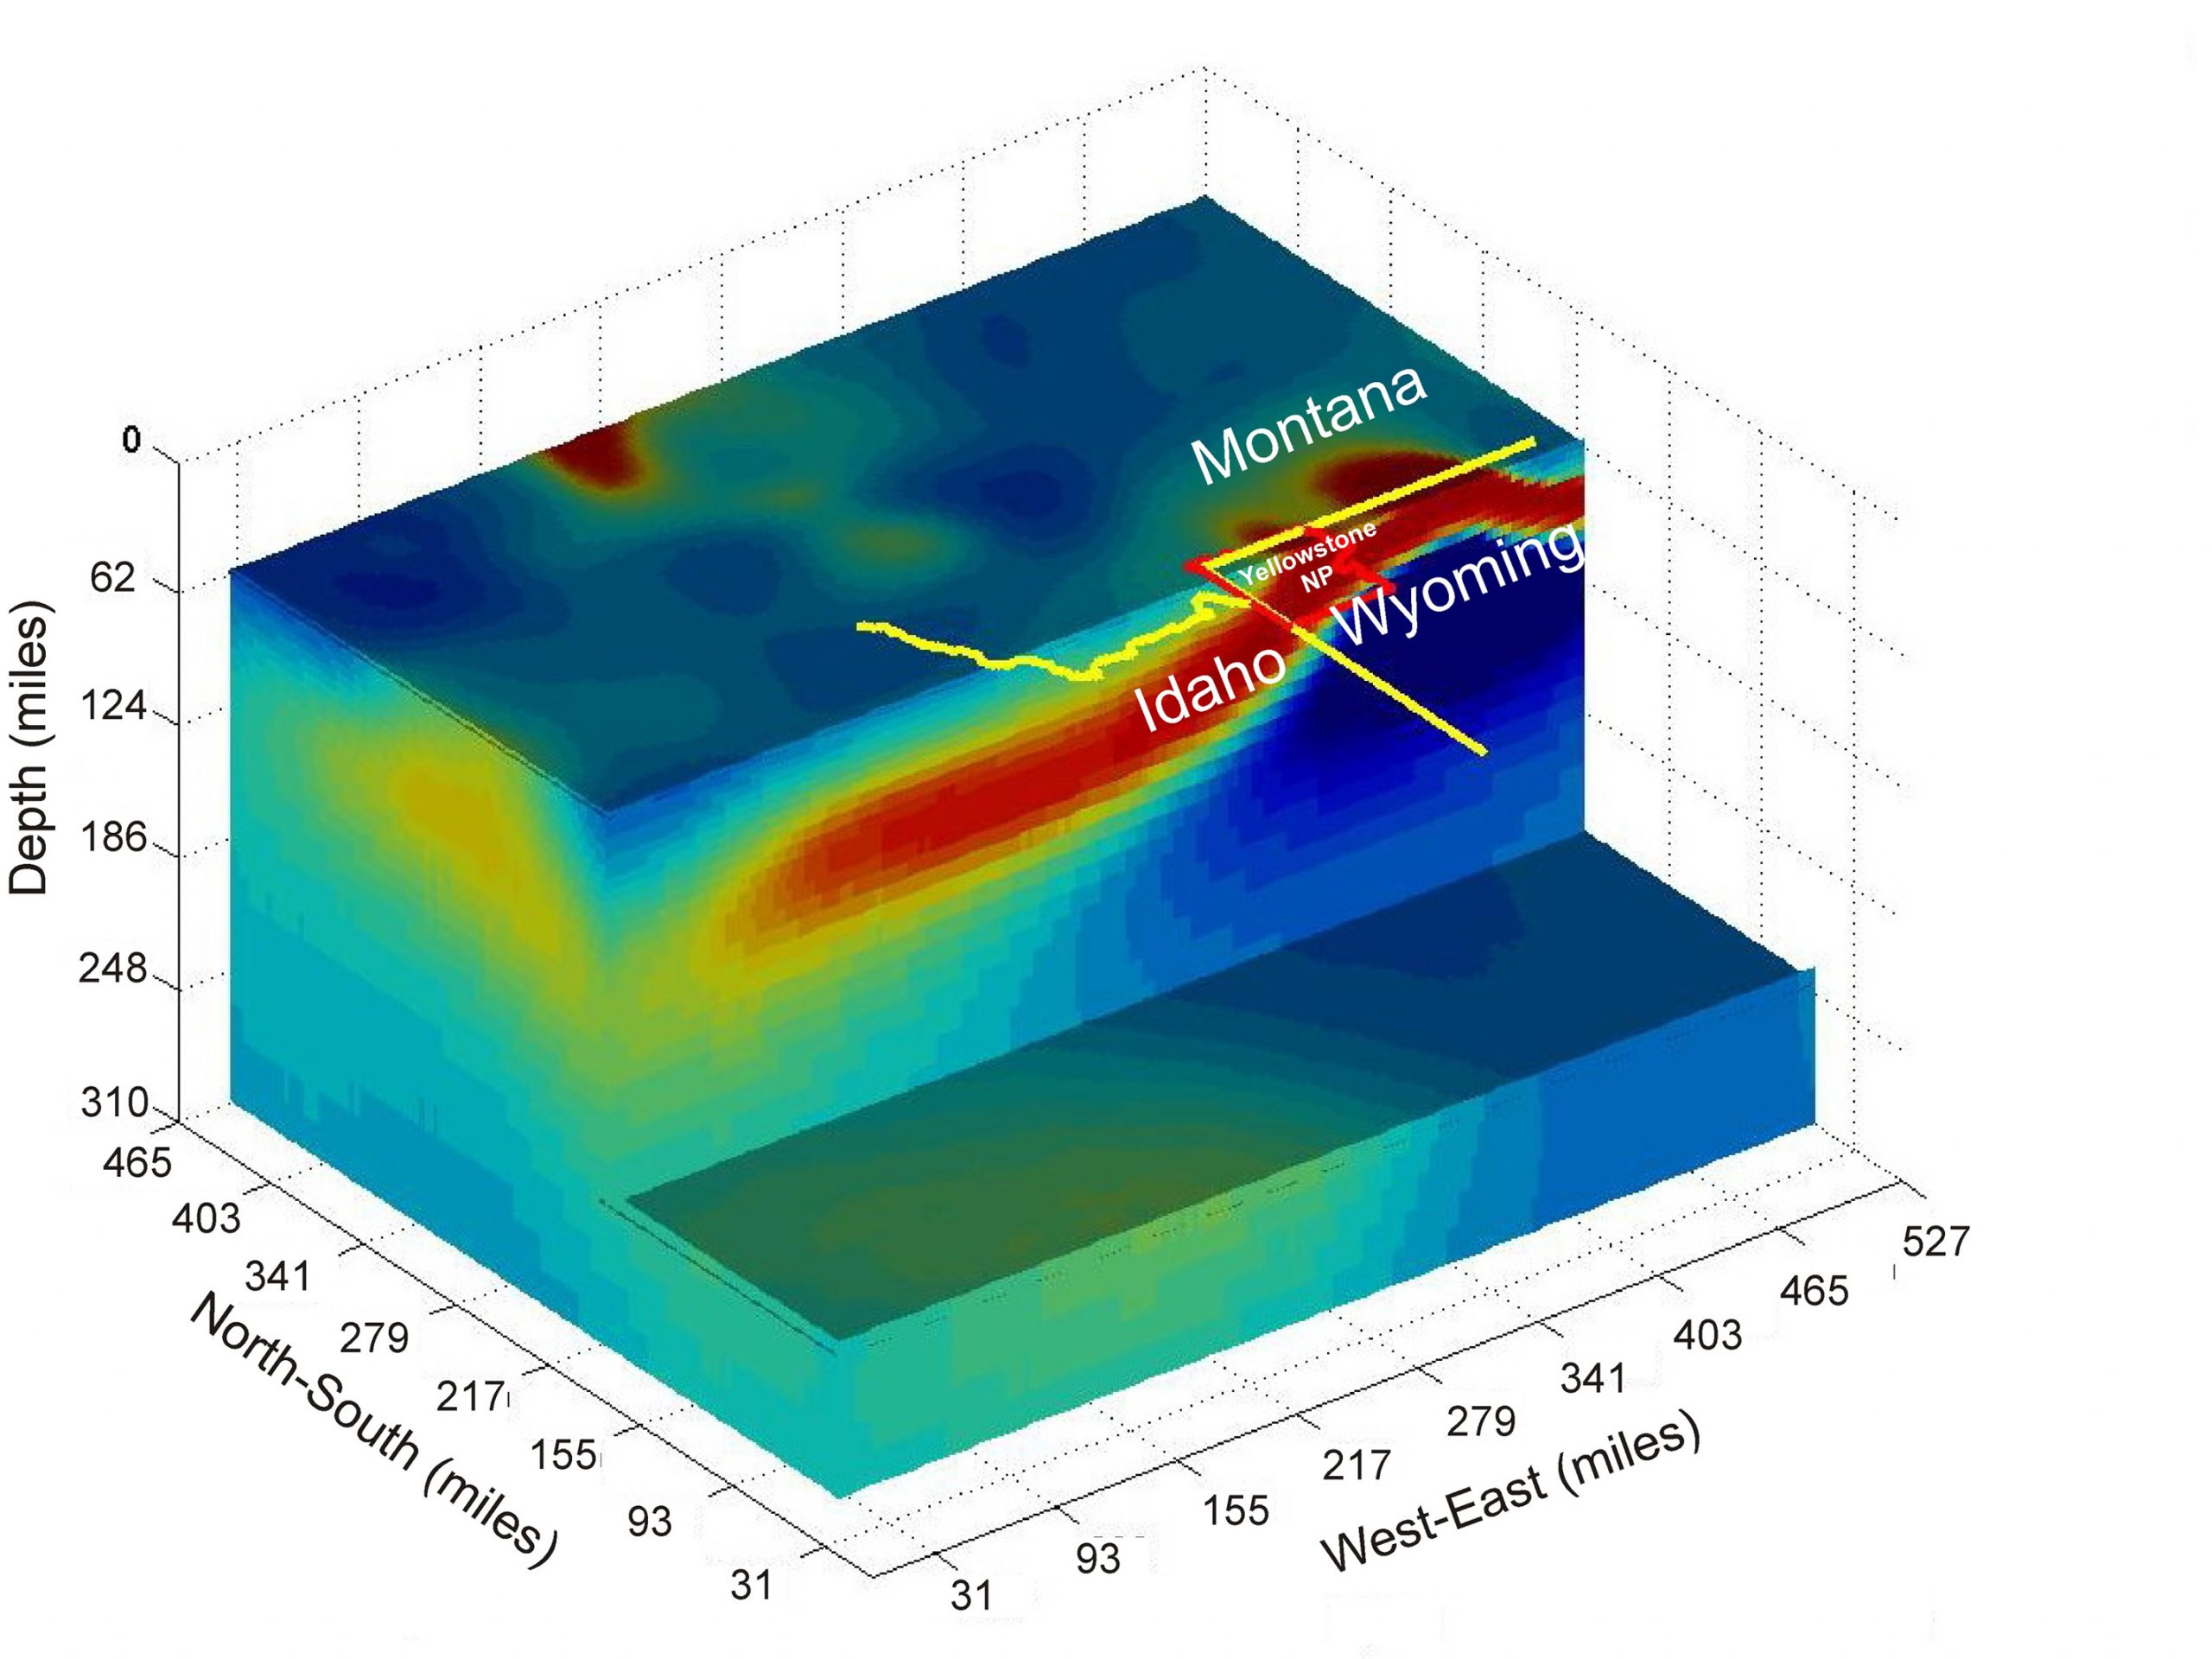 """This image, based on variations in electrical conductivity of underground rock, shows the volcanic plume of partly molten rock that feeds the Yellowstone supervolcano. Yellow and red indicate higher conductivity, green and blue indicate lower conductivity. Made by University of Utah geophysicists and computer scientists, this is the first large-scale """"geoelectric"""" image of the Yellowstone hotspot."""